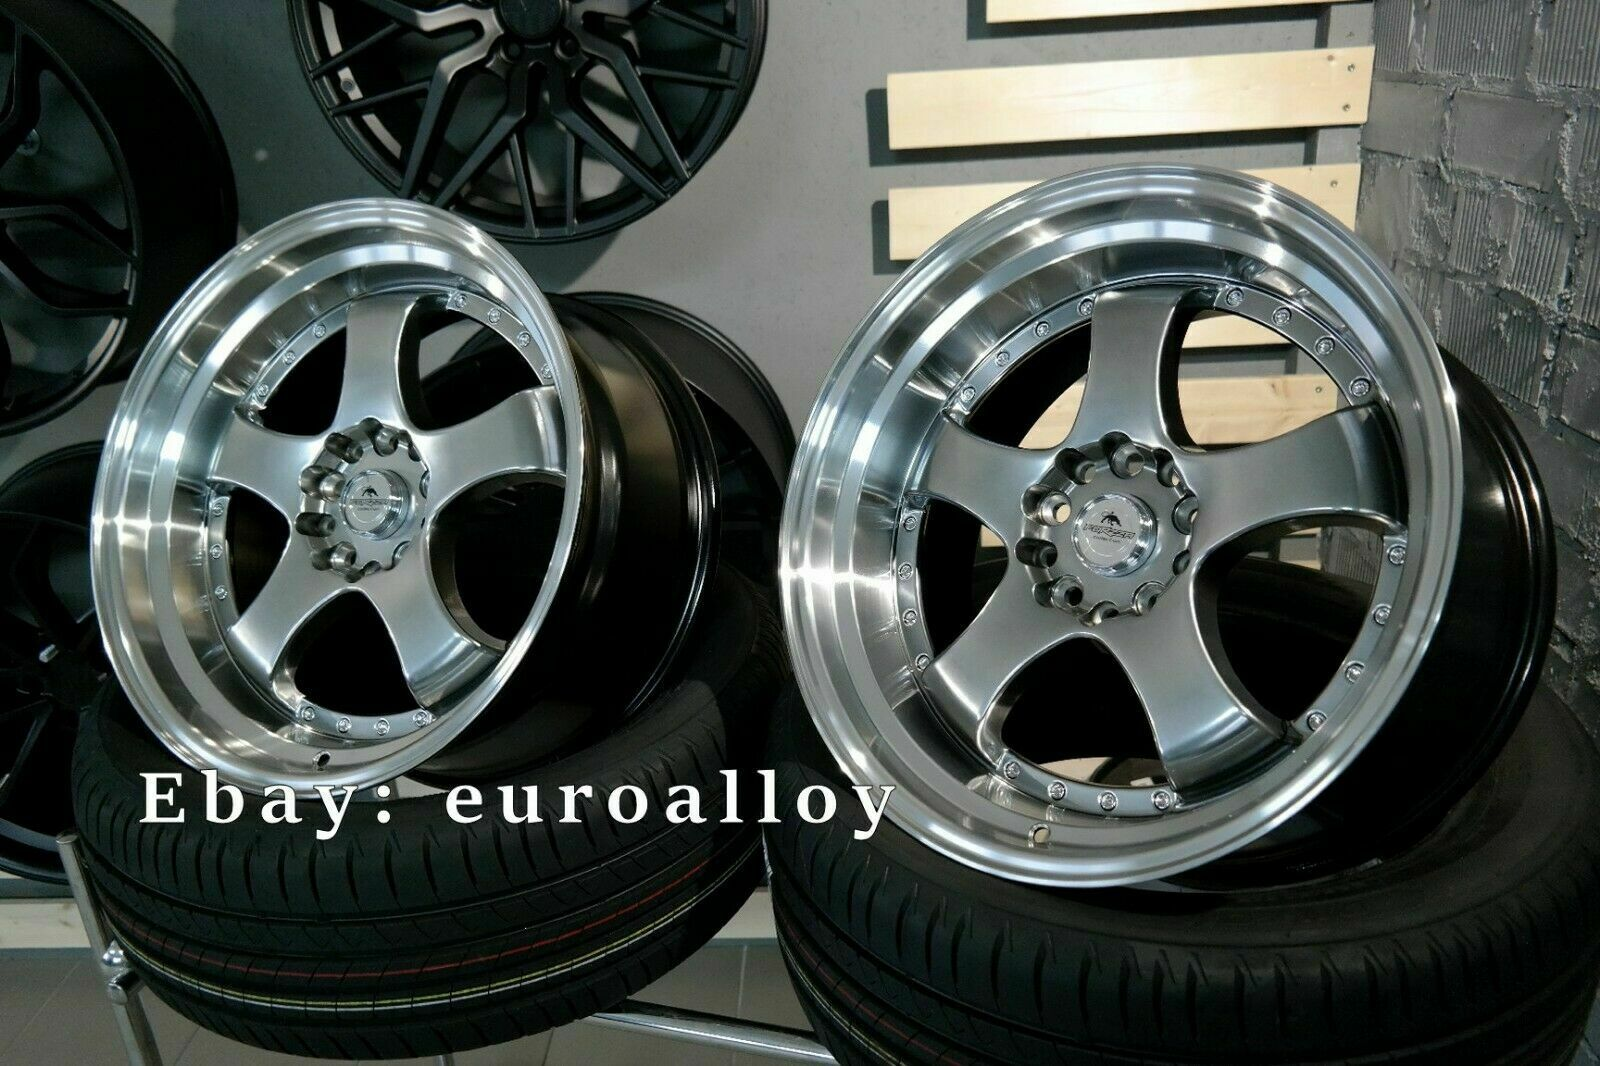 New 4x 18 Inch 5x120 Ssr Sp1 Style Rims For Bmw Jdm Work Advan Japan Wheels Ebay